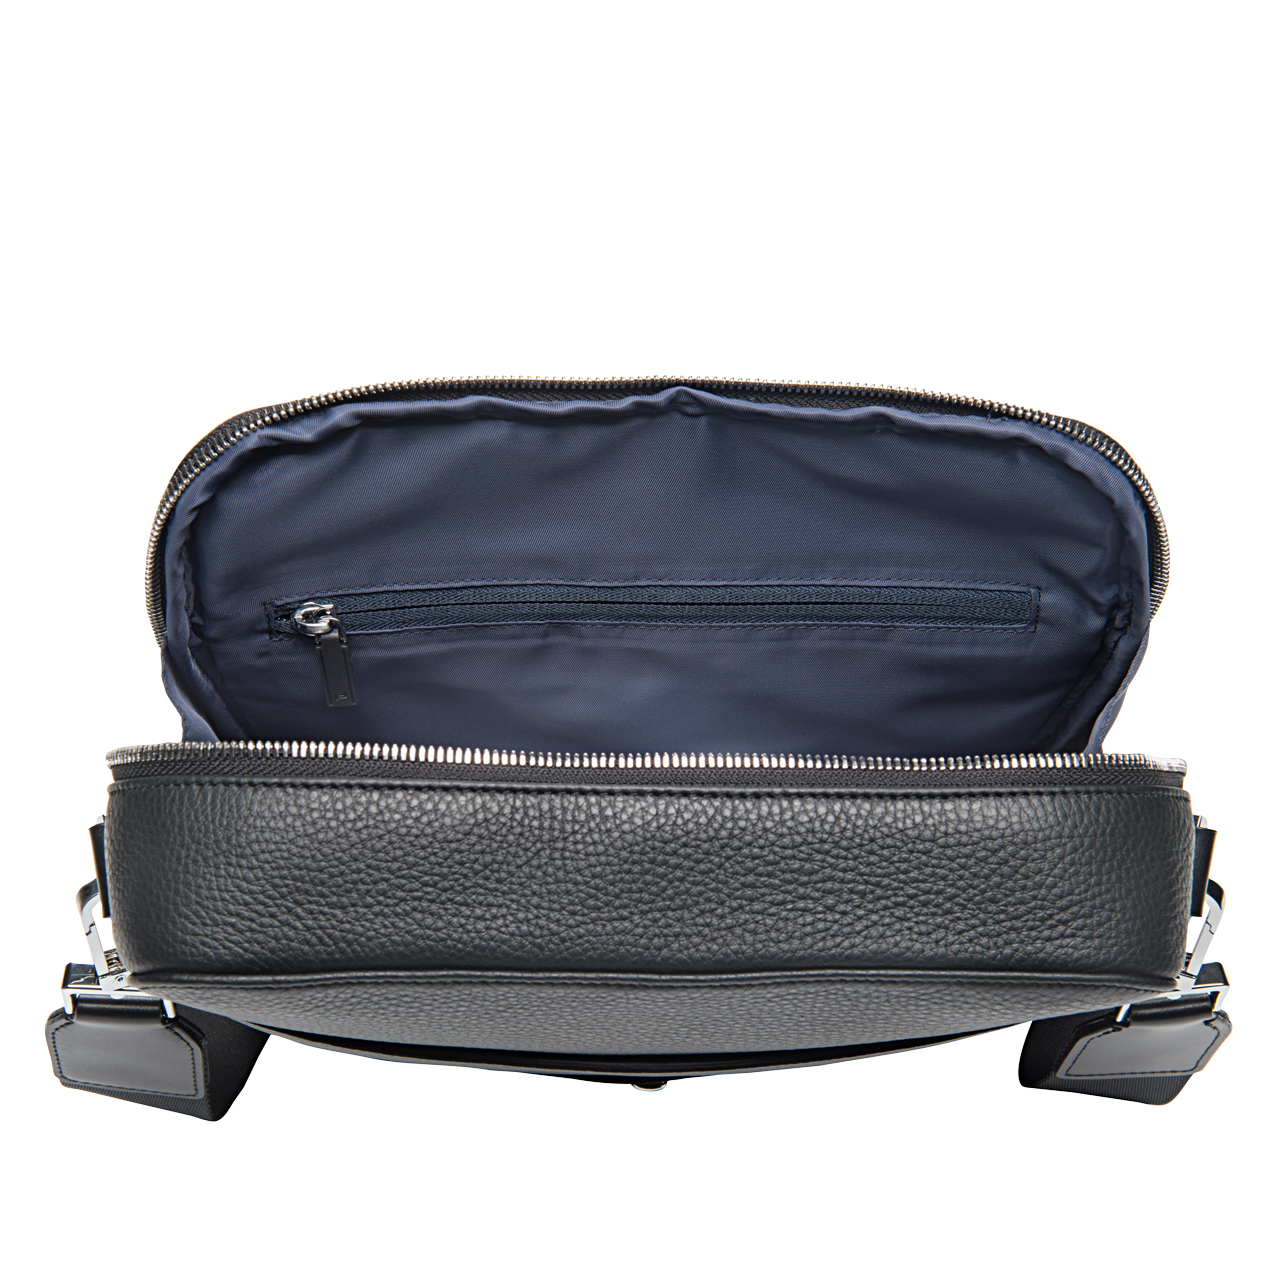 Voyager 2.0 SVZ Shoulder Bag